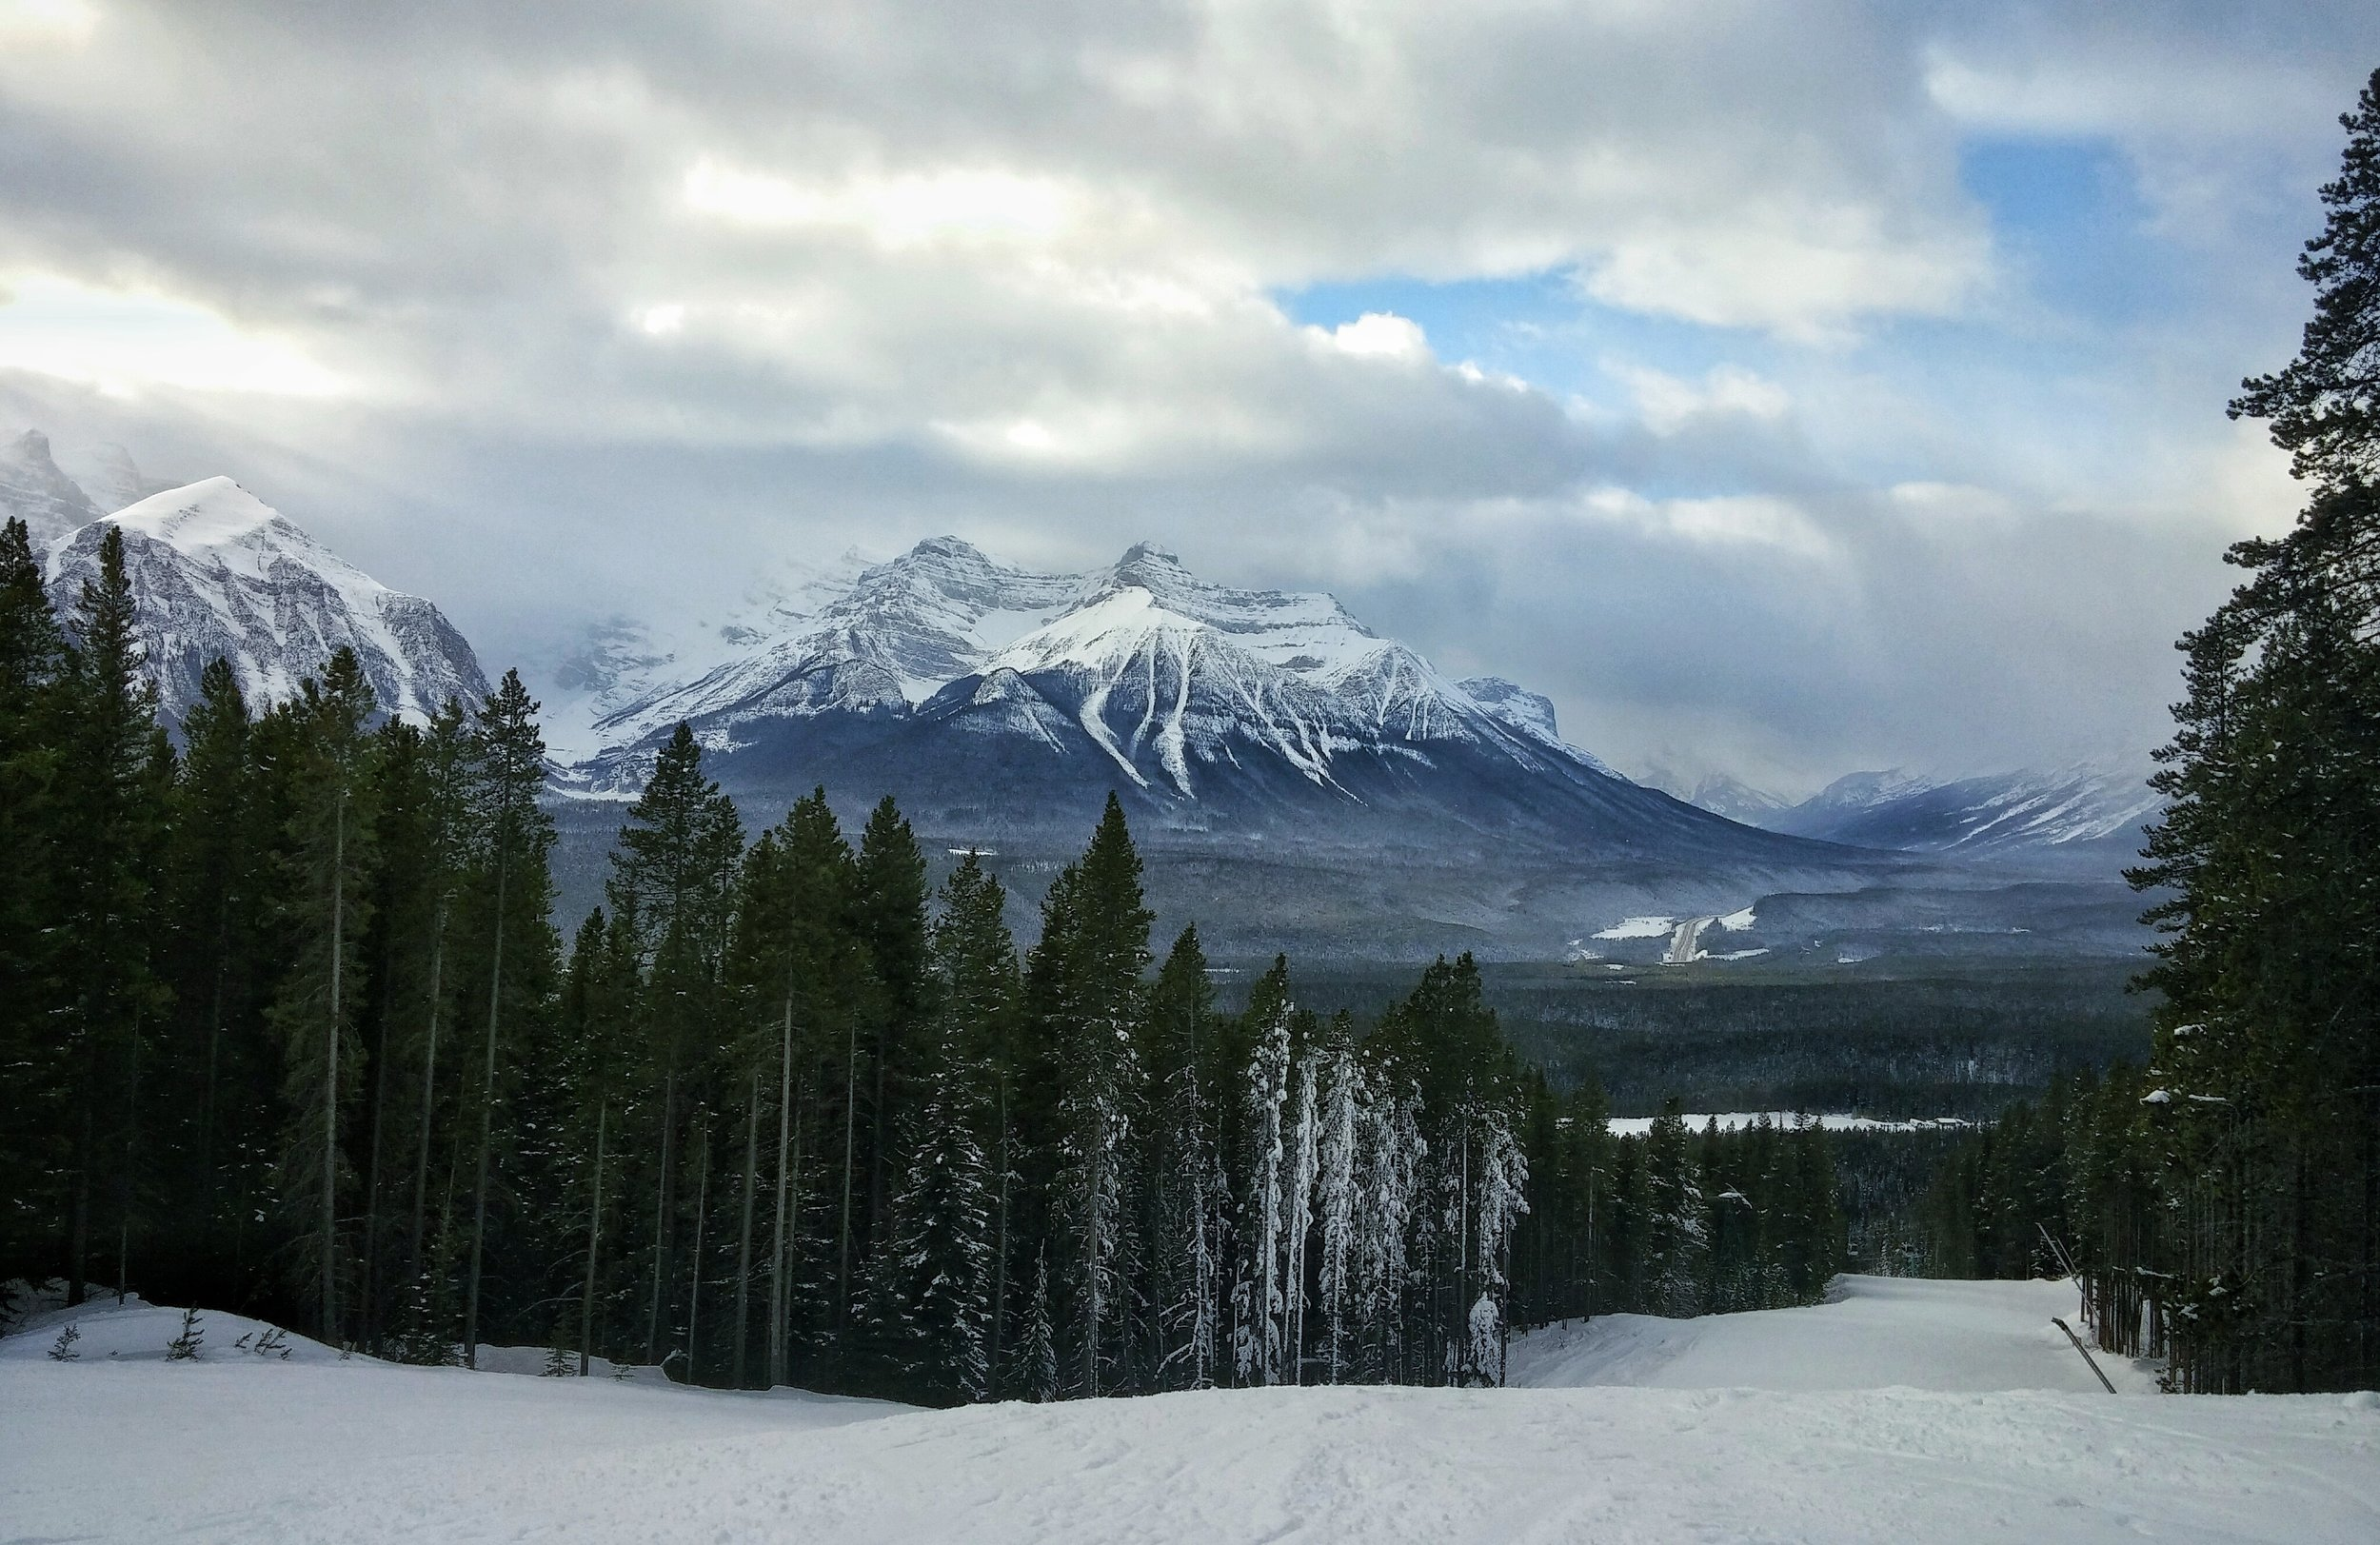 The ski hill at Lake Louise is one of the most popular winter destinations.